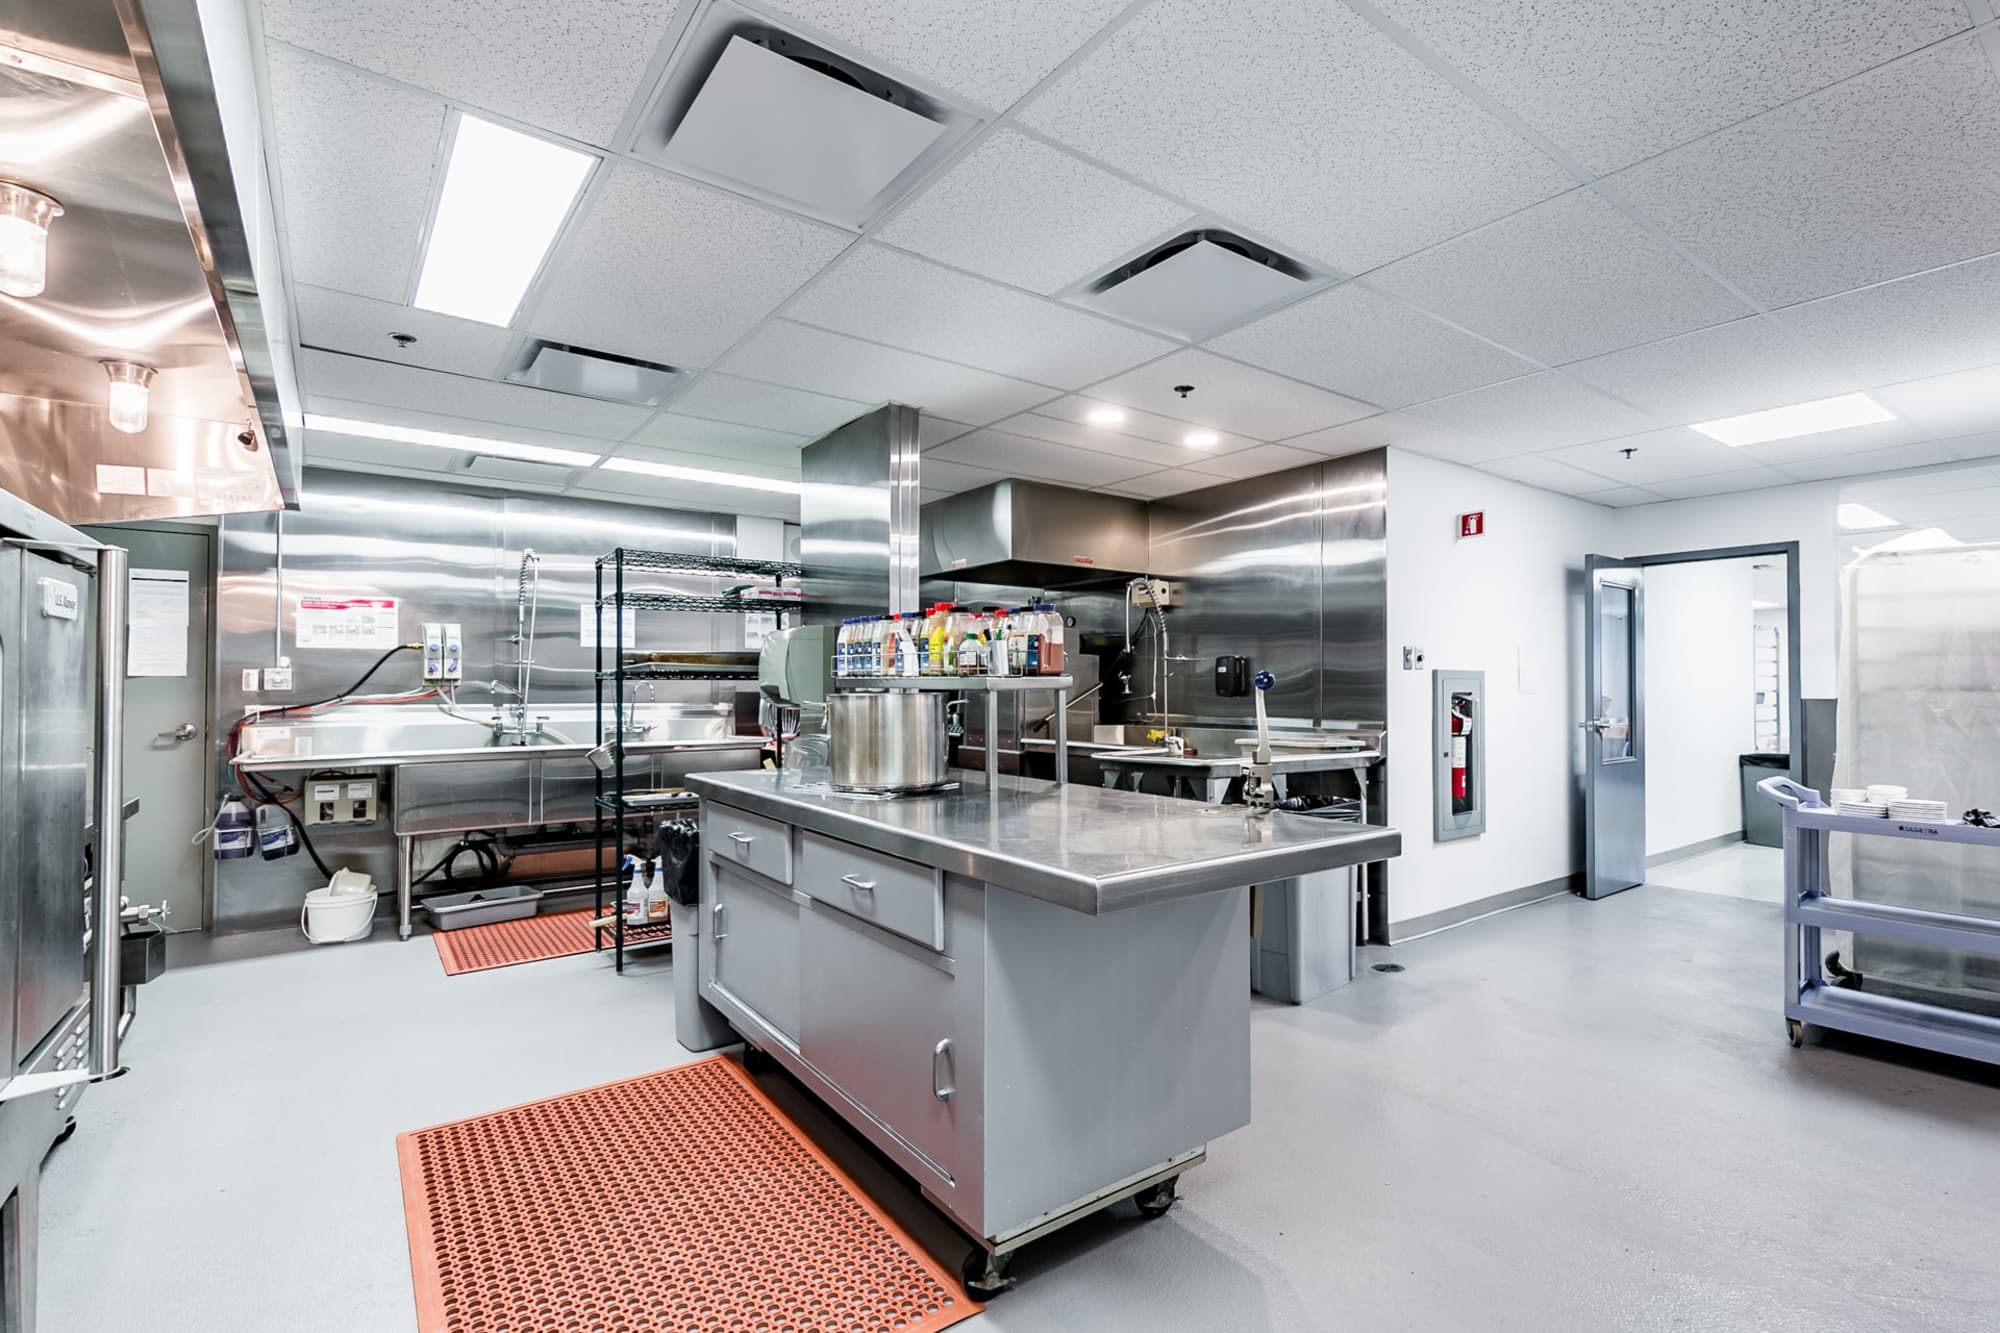 commercial kitchen renovation with stainless steel equipment